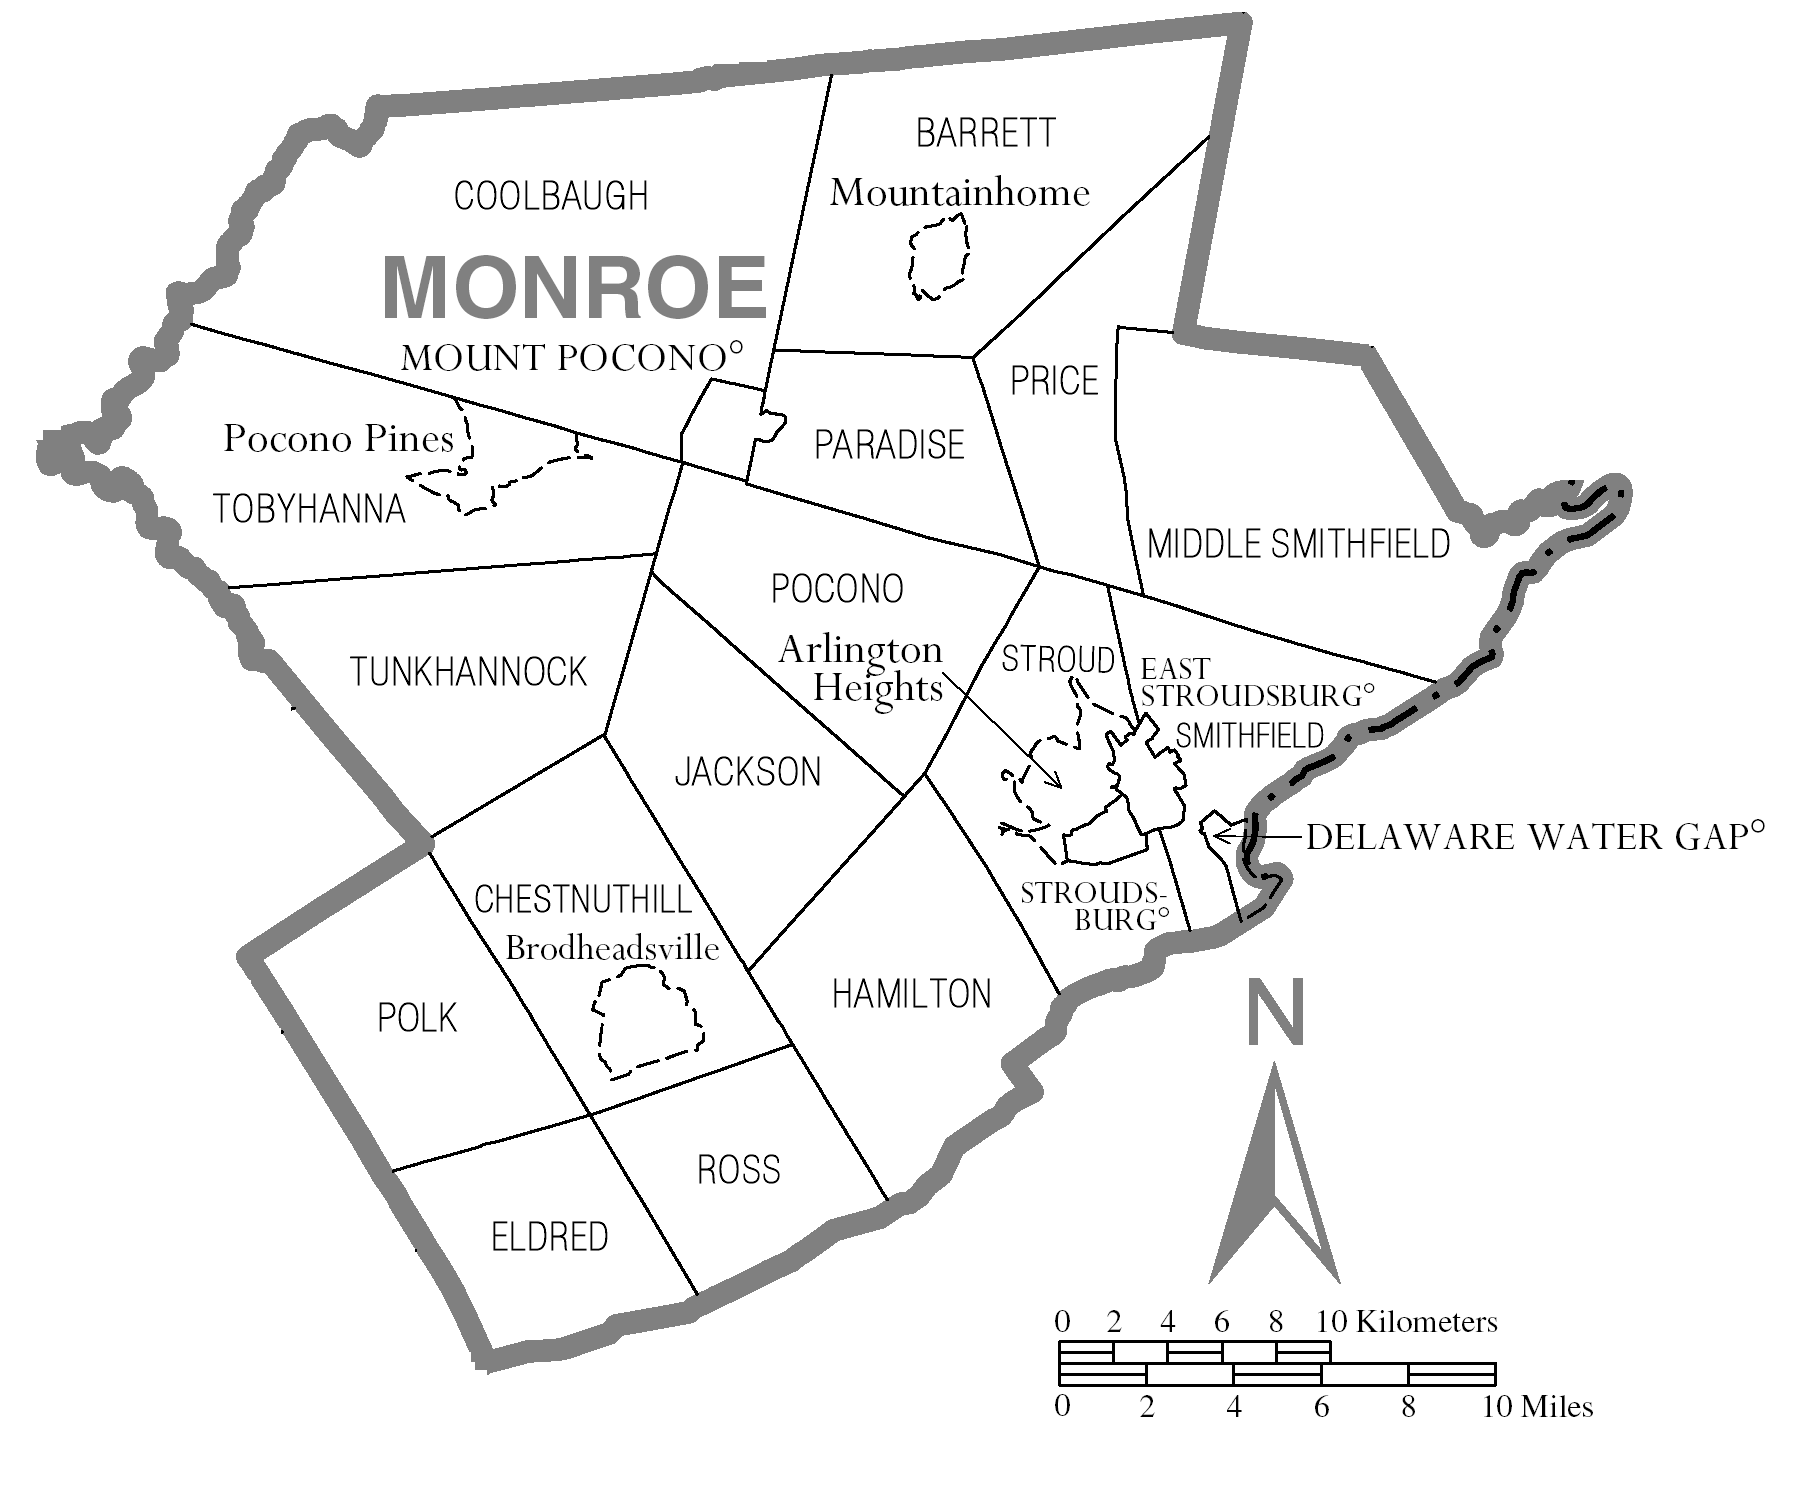 monroe township personals Classifieds: personals local nj classified ads 68 listings match, 1-10 shown page of 7 next can't find what you're looking for  block 801 on the official tax map of the township of monroe dimensions: 105 ft x 50119 ft x 75 ft x 10665 ft x 39462 ft x 51275 ft nearest cross street: grandview avenue the sheriff hereby reserves the right.